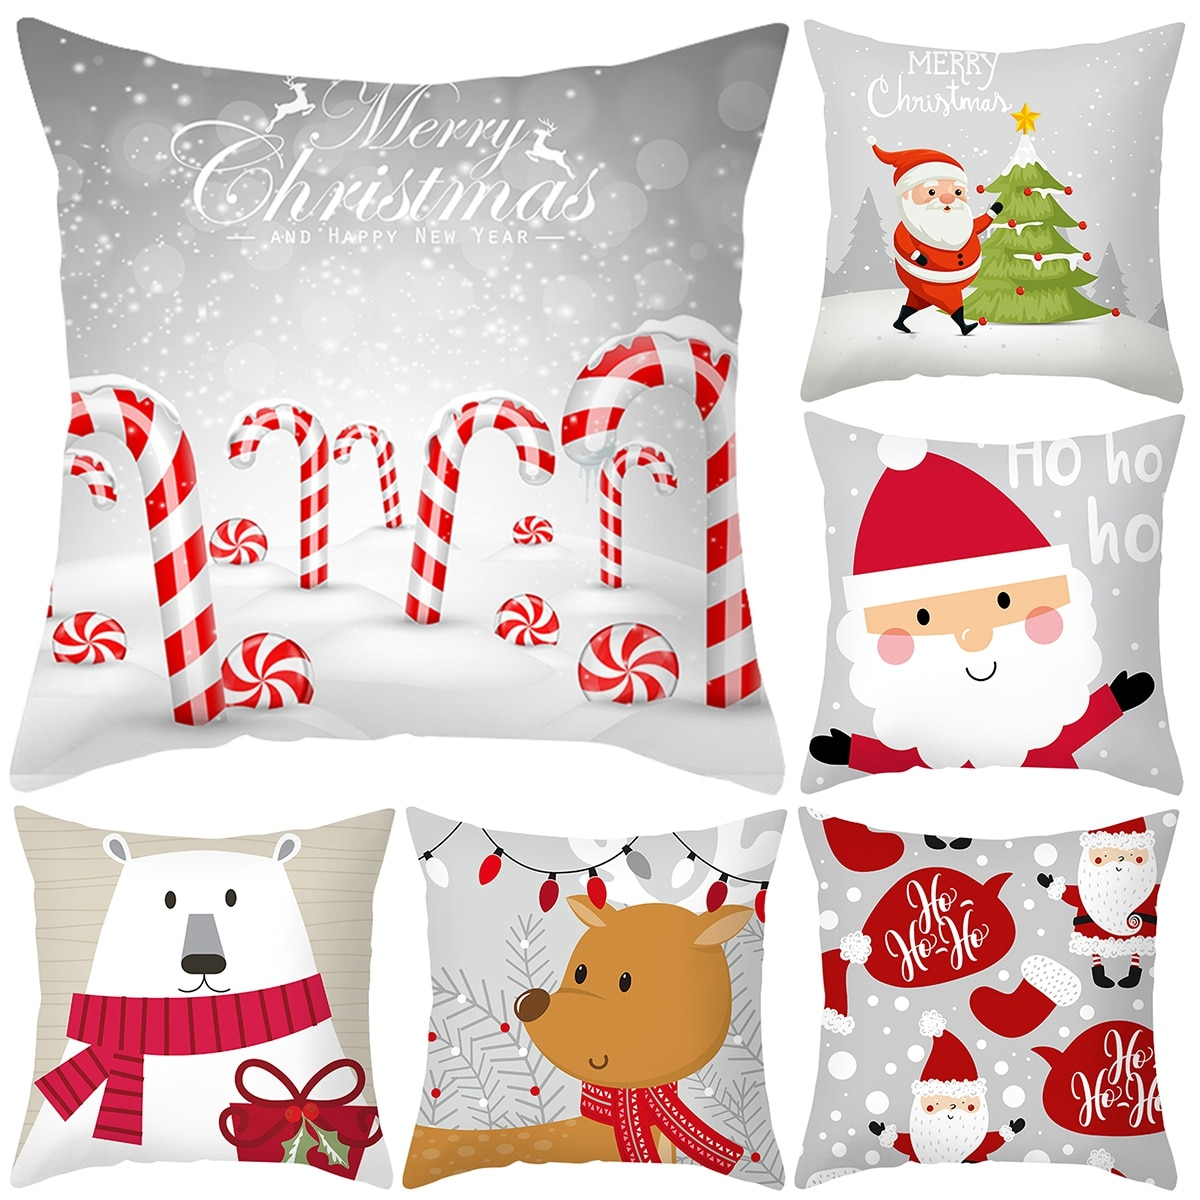 merry christmas cushion cover christmas decorations for home happy new year decor christmas ornament cotton linen pillow cover pillowcase 45cm x 45cm Christmas Pillowcase Decorative Sofa Cushion Case Bed Pillow Cover Home Decor Christmas Car Cushion Cover Pillow Case 45*45cm